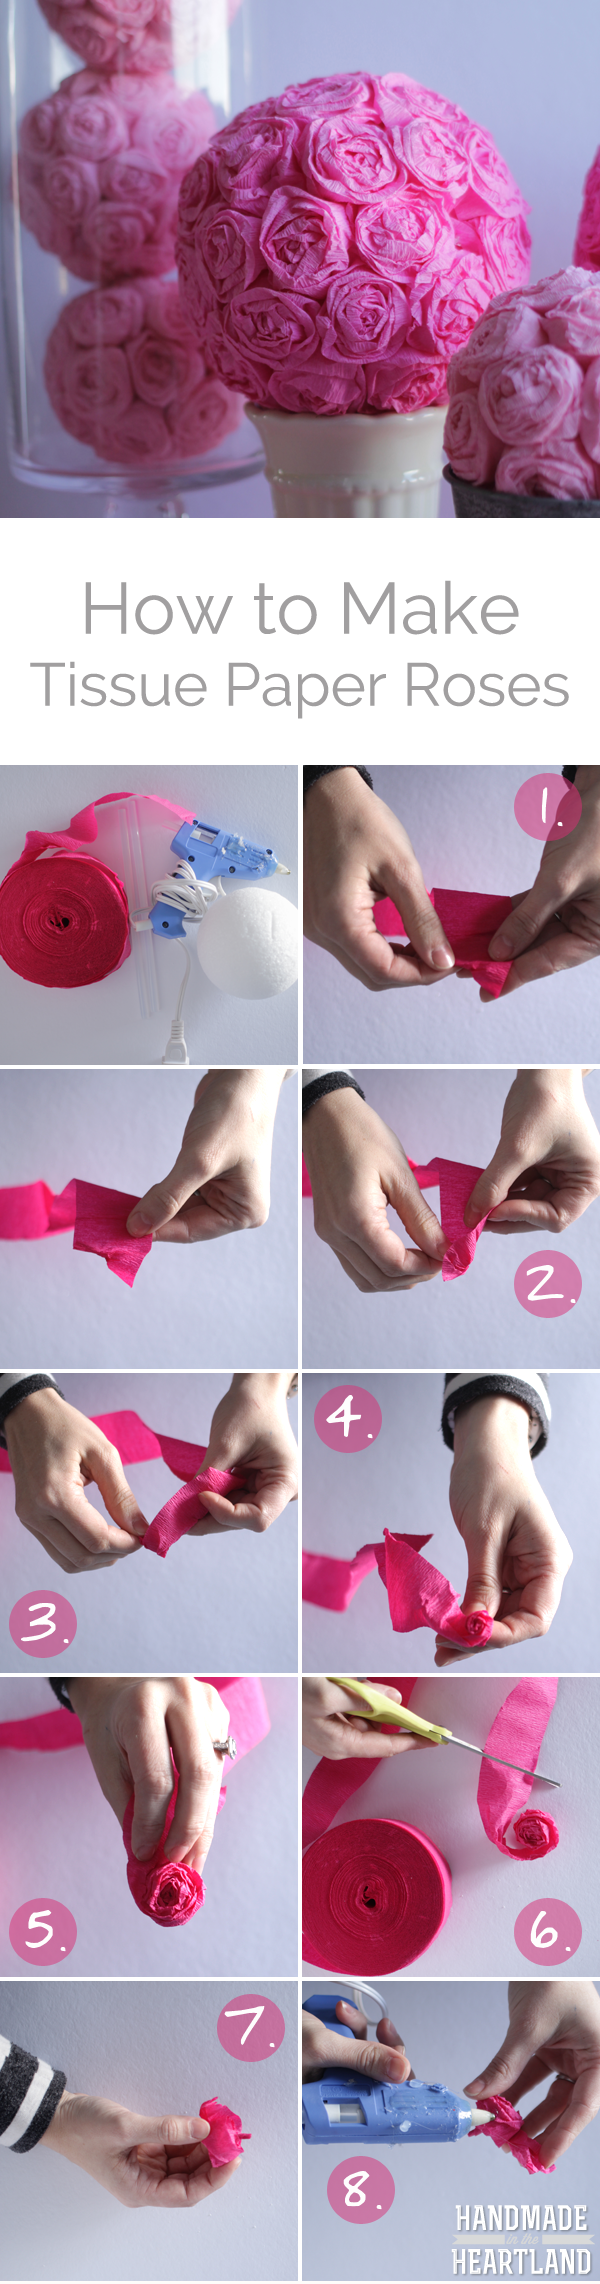 How To Make Roses With Tissue Paper Coursework Service